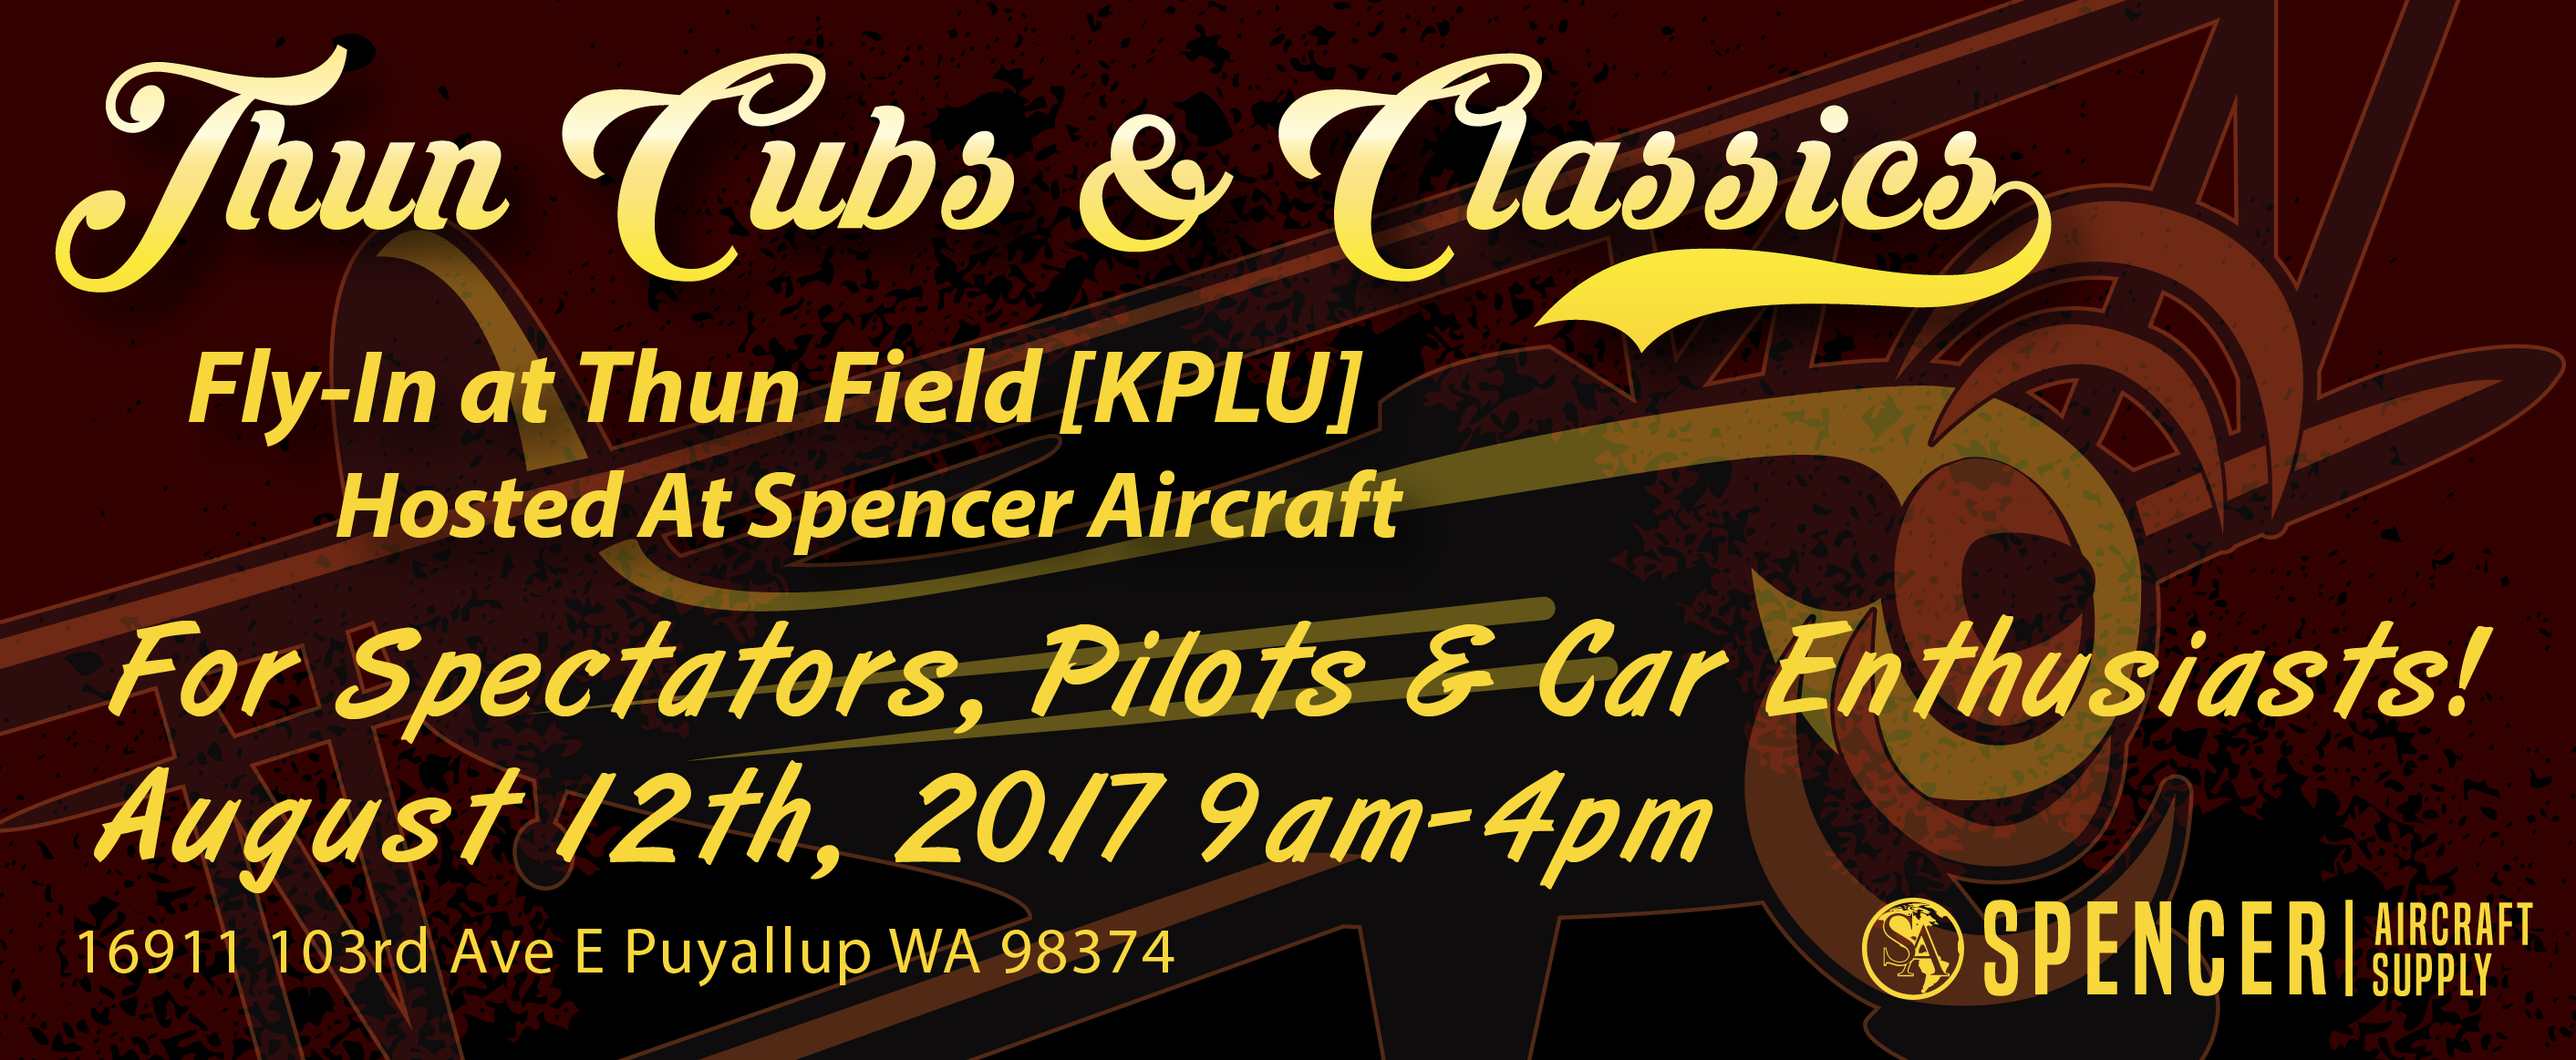 Thun Cubs & Classics Fly-In 2017